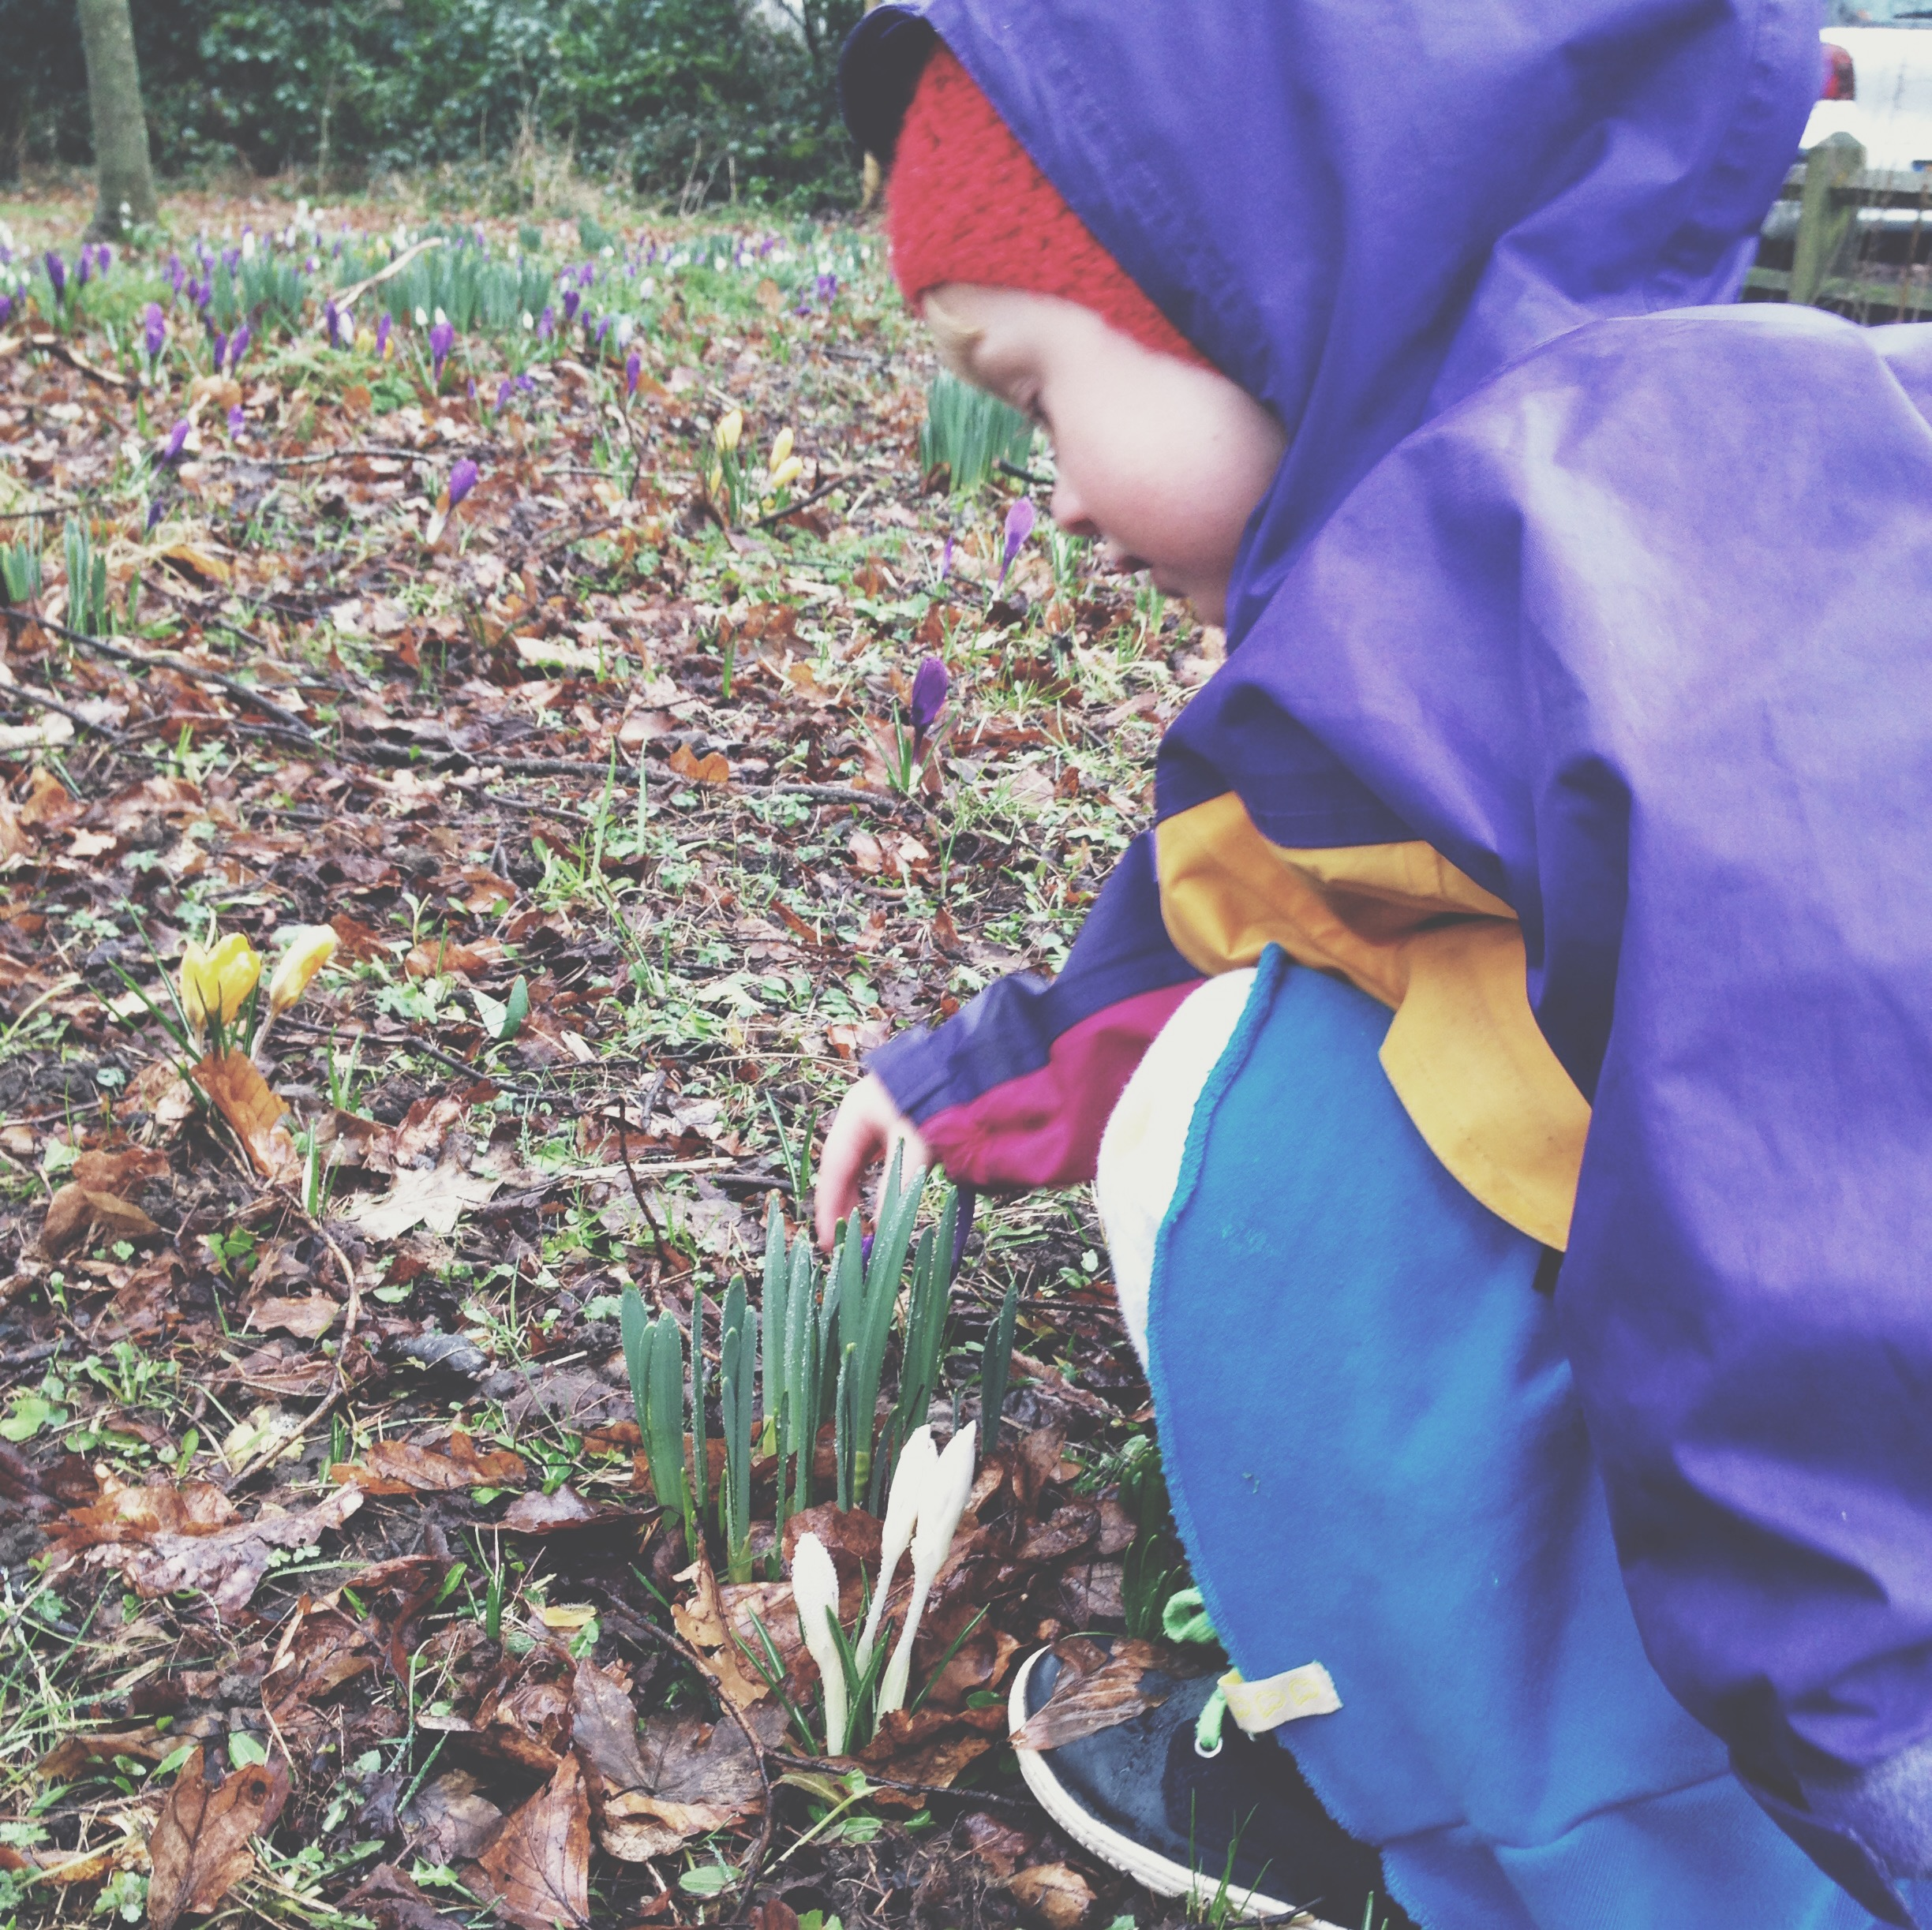 (She's singing to the crocusses!)